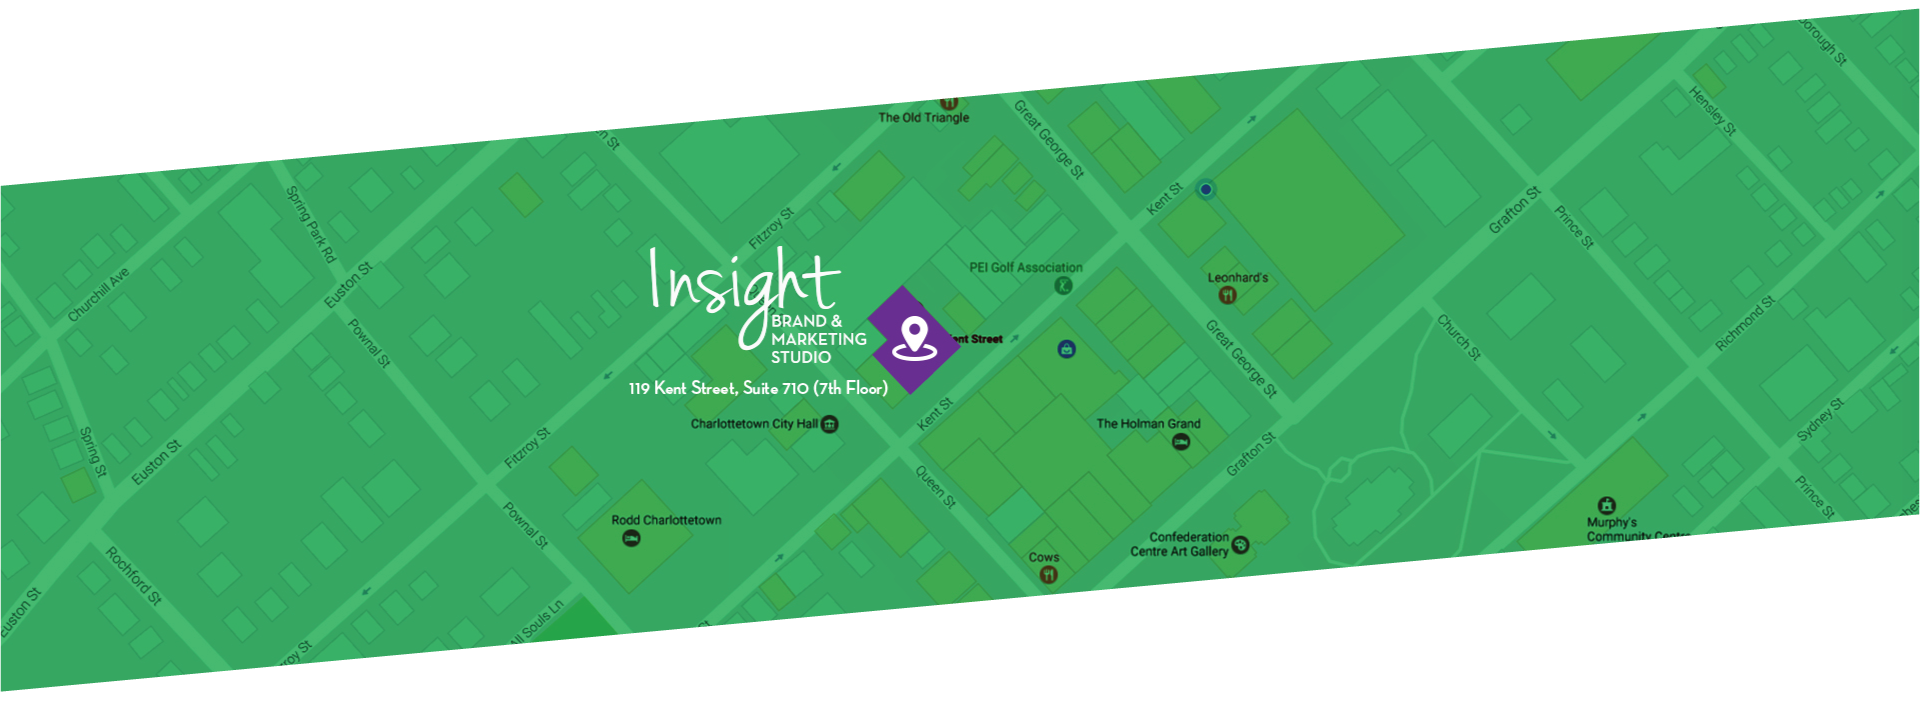 A map that displays where our offices are located, which is 119 Kent Street in Charlottetown PEI.